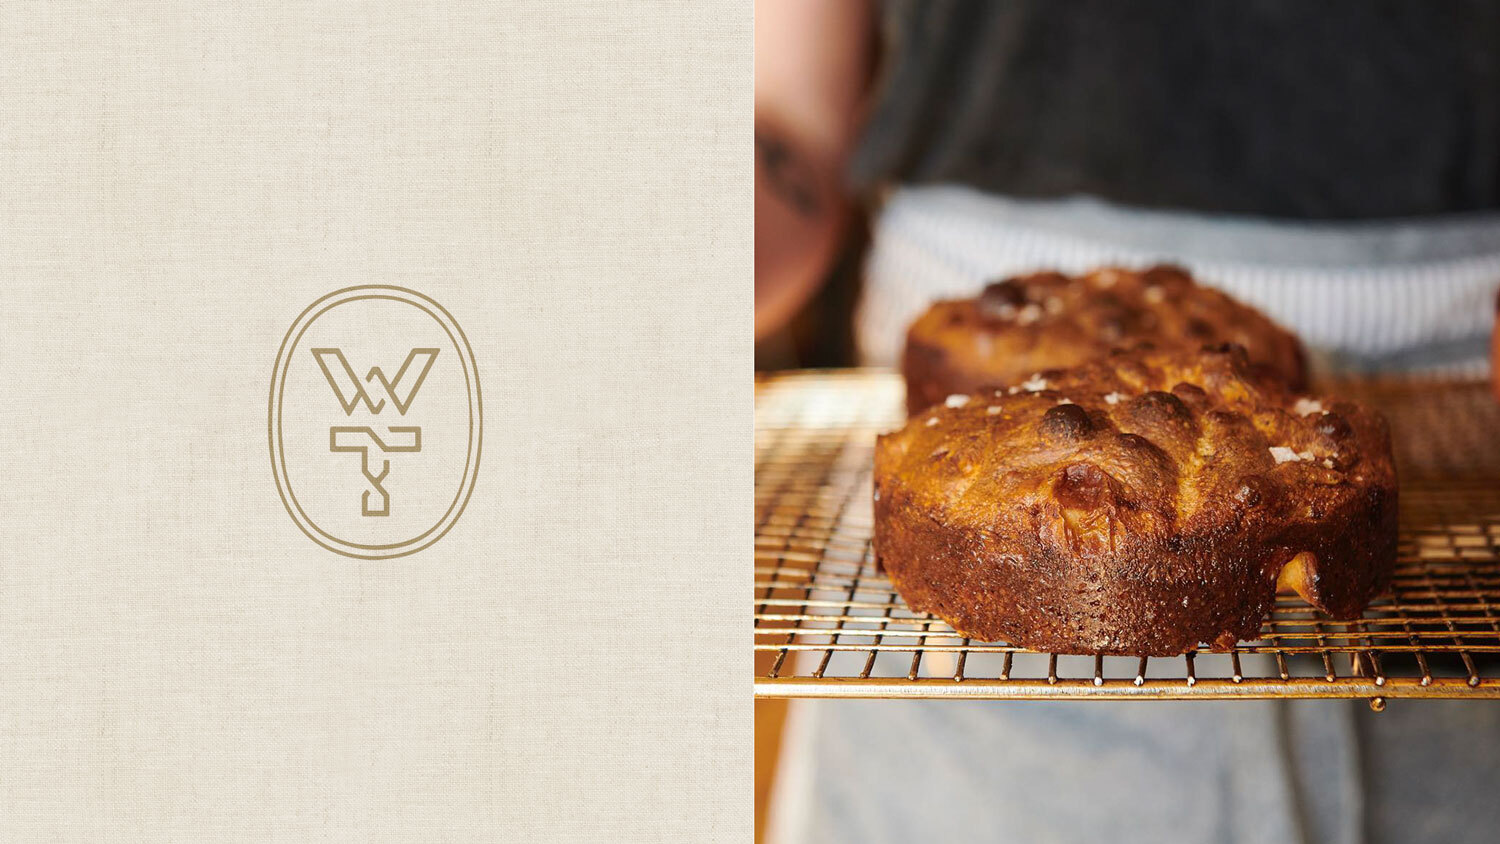 Winslow's Table logo and baked good